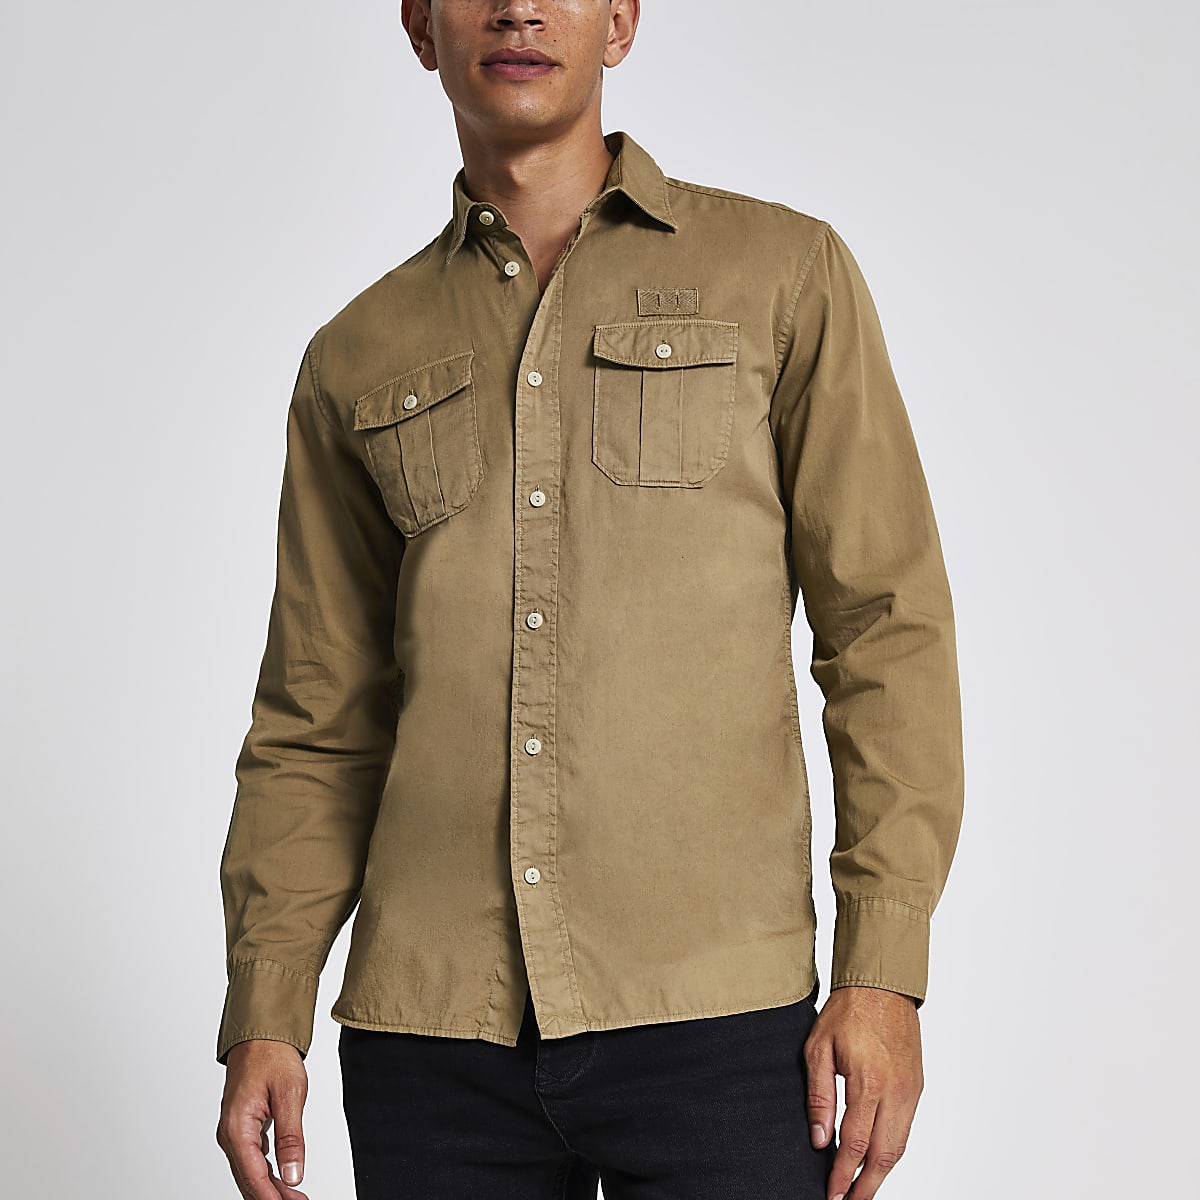 Selected Homme – Chemise grège à manches longues